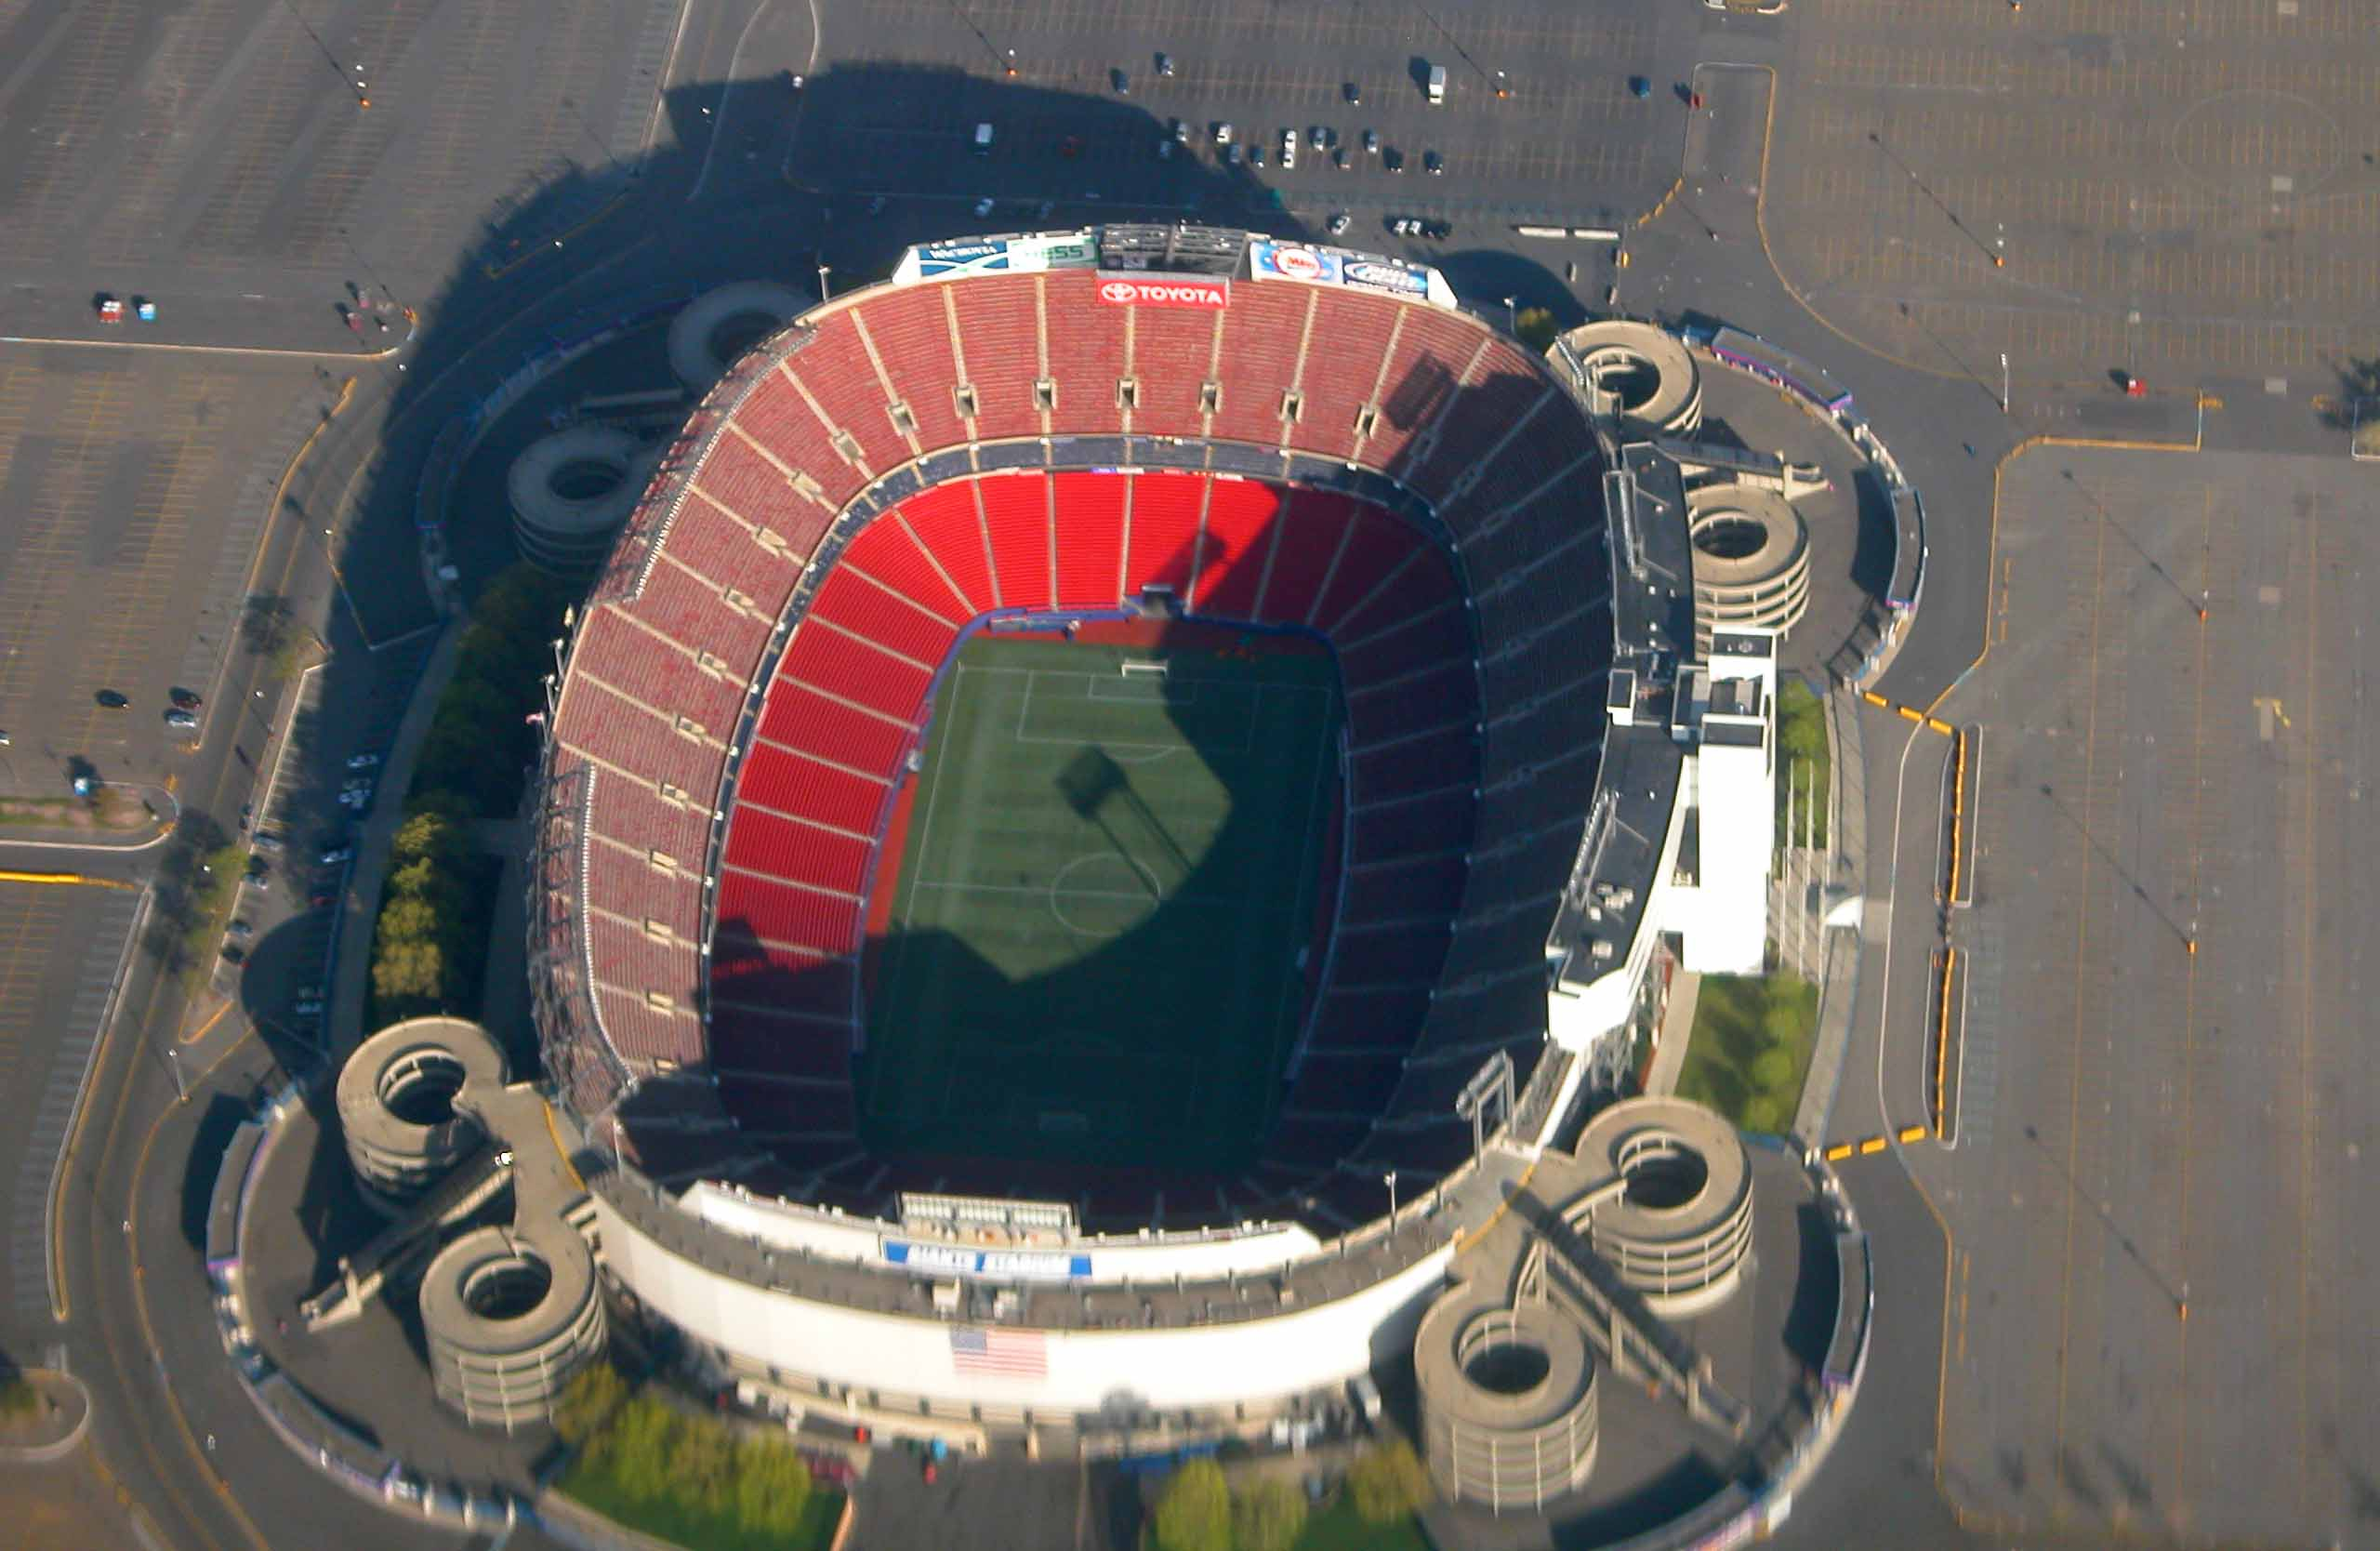 Giants Stadium (Foto: www.nj.com)